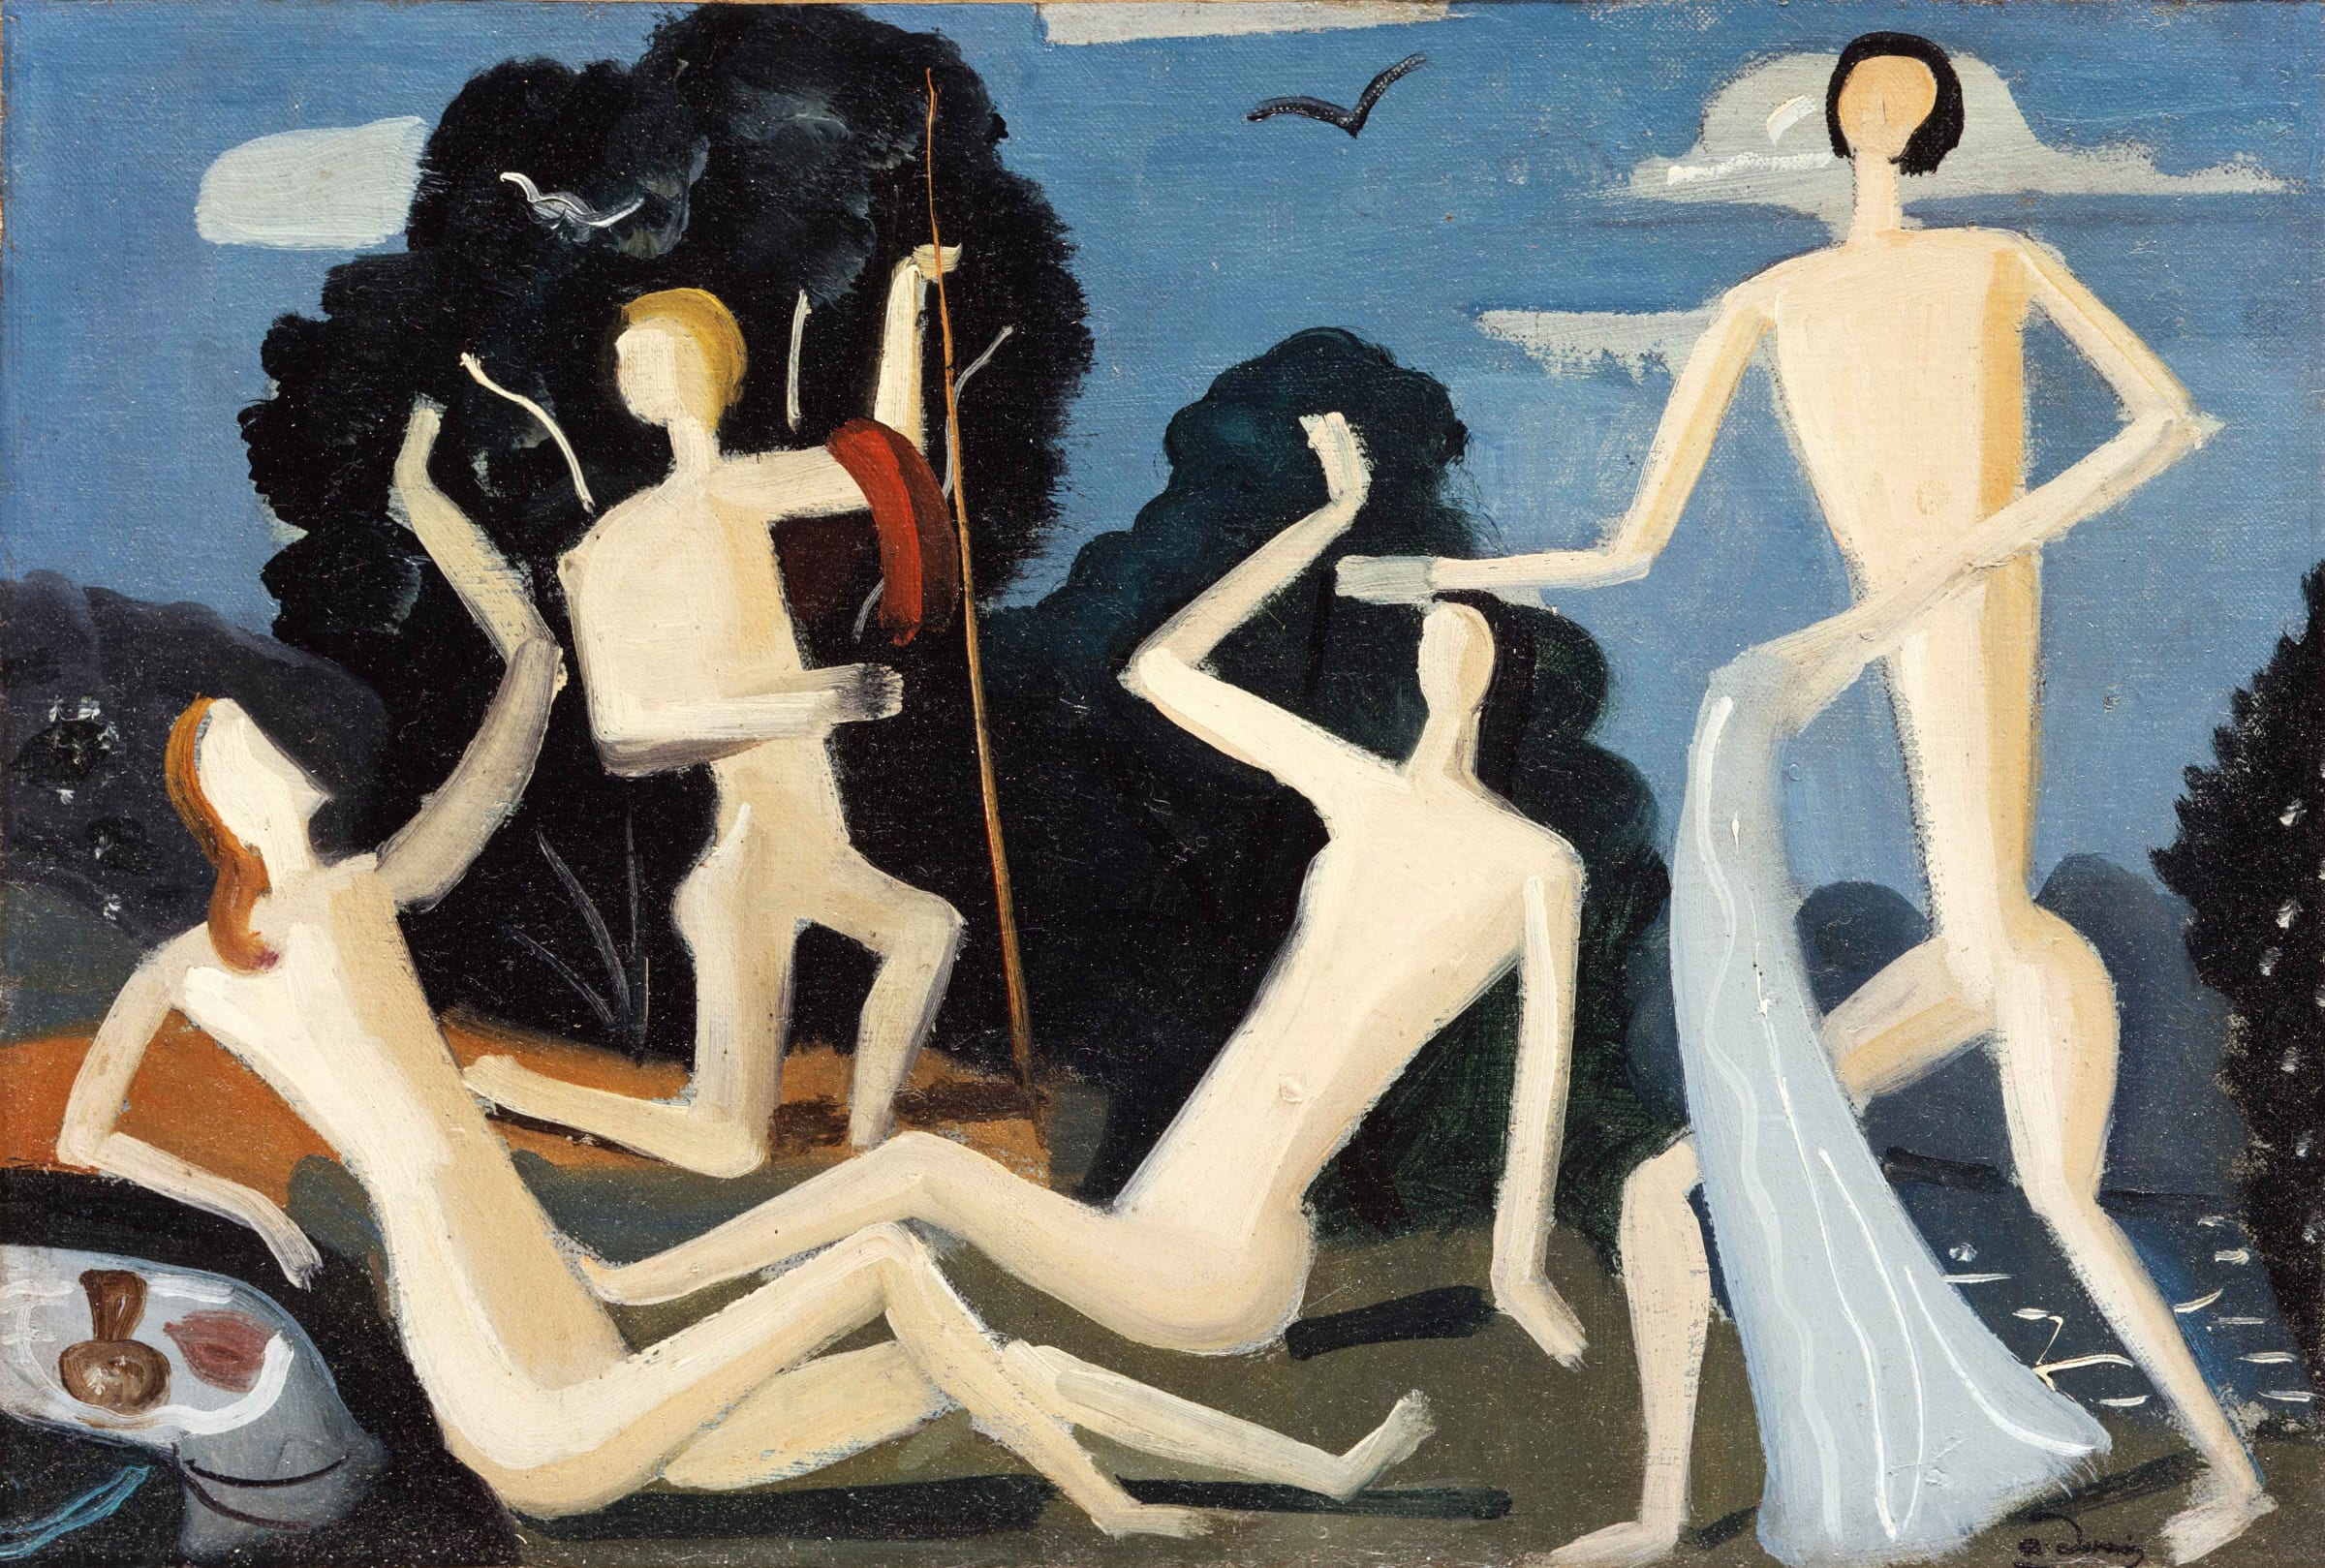 "<span class=""link fancybox-details-link""><a href=""/content/feature/34/artworks_standalone9476/"">View Detail Page</a></span><div class=""artist""><span class=""artist""><strong>André Derain</strong></span></div><div class=""title""><em>Quatre baigneuses dans un paysage</em>, c.1950-1952</div><div class=""signed_and_dated"">Stamped with the signature lower right</div><div class=""medium"">Oil on canvas</div><div class=""dimensions"">24.5 x 36.8 cm<br>10 x 14 1/2 inches</div>"